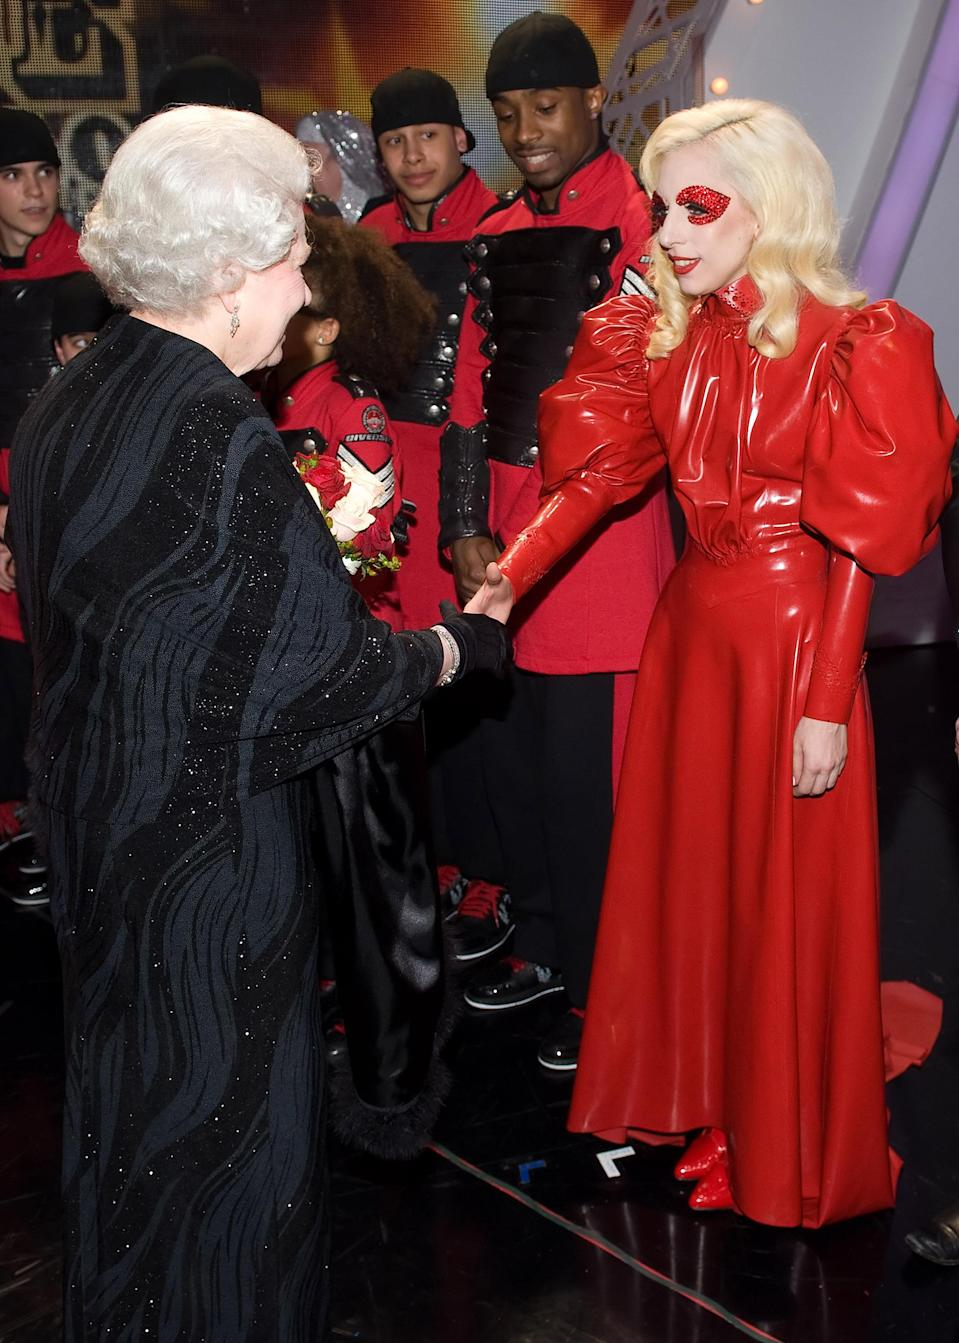 <p>Lady Gaga is not one to follow royal protocol and wore a hot red latex dress (complete with power shoulders) to shake Her Majesty's hand. We wonder if the Queen has watched 'A Star is Born' yet… <em>[Photo: Getty]</em> </p>